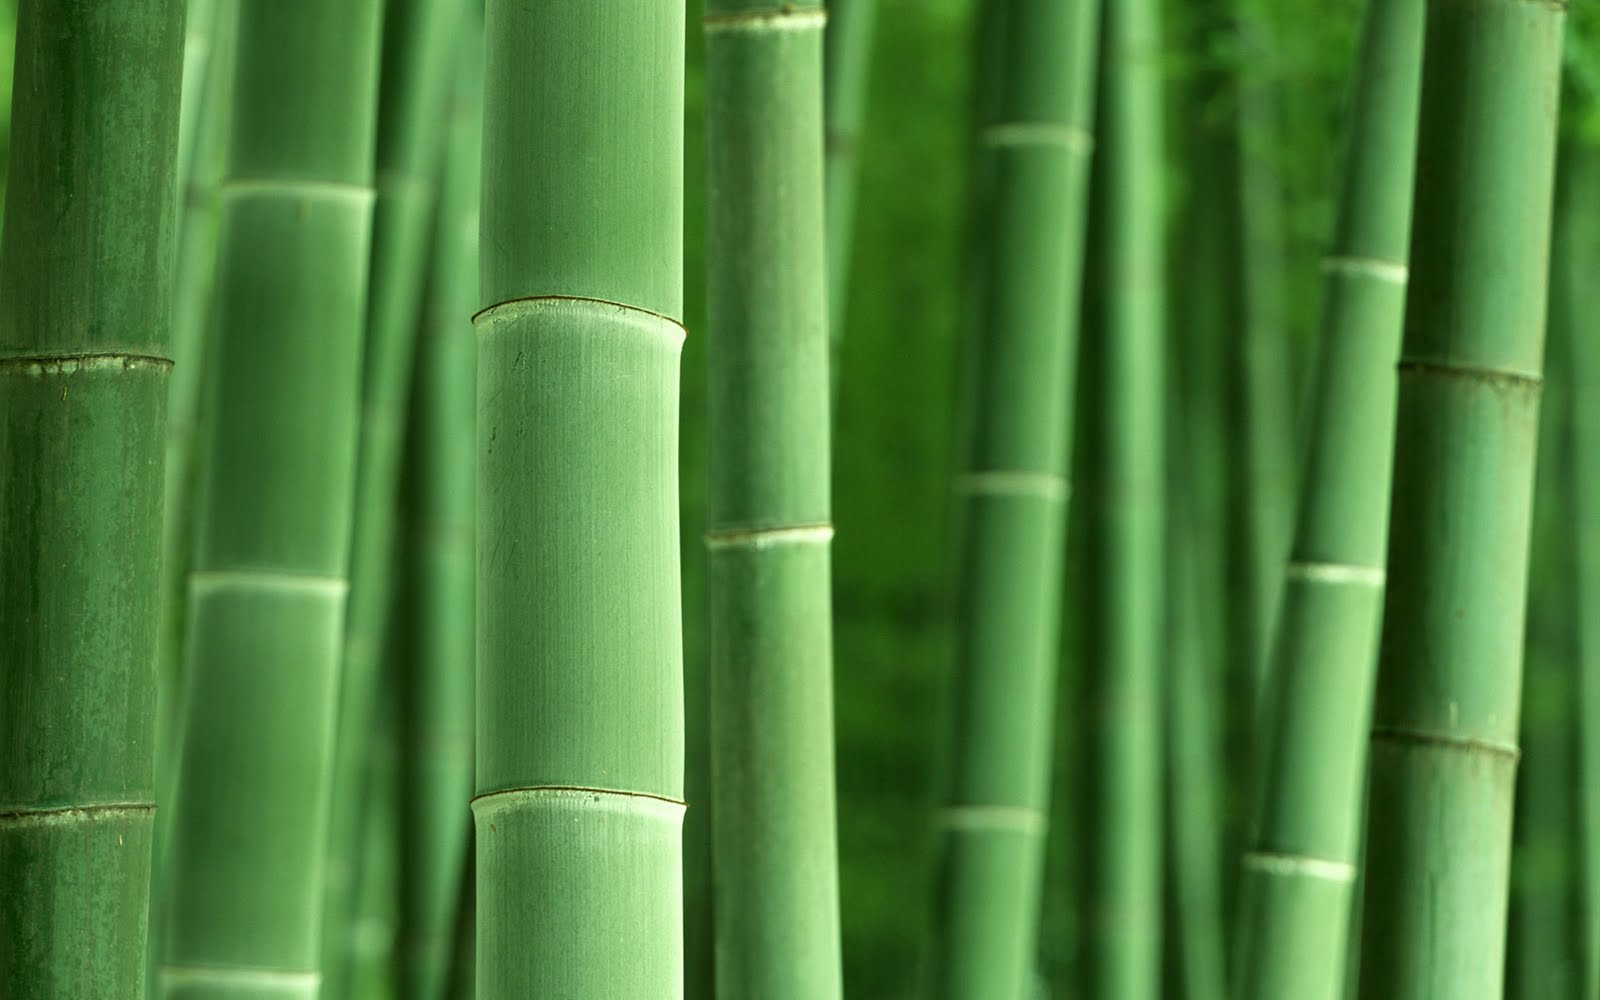 Wallpapers Box Amazing Bamboo 1920x1200 Hd Wallpapers